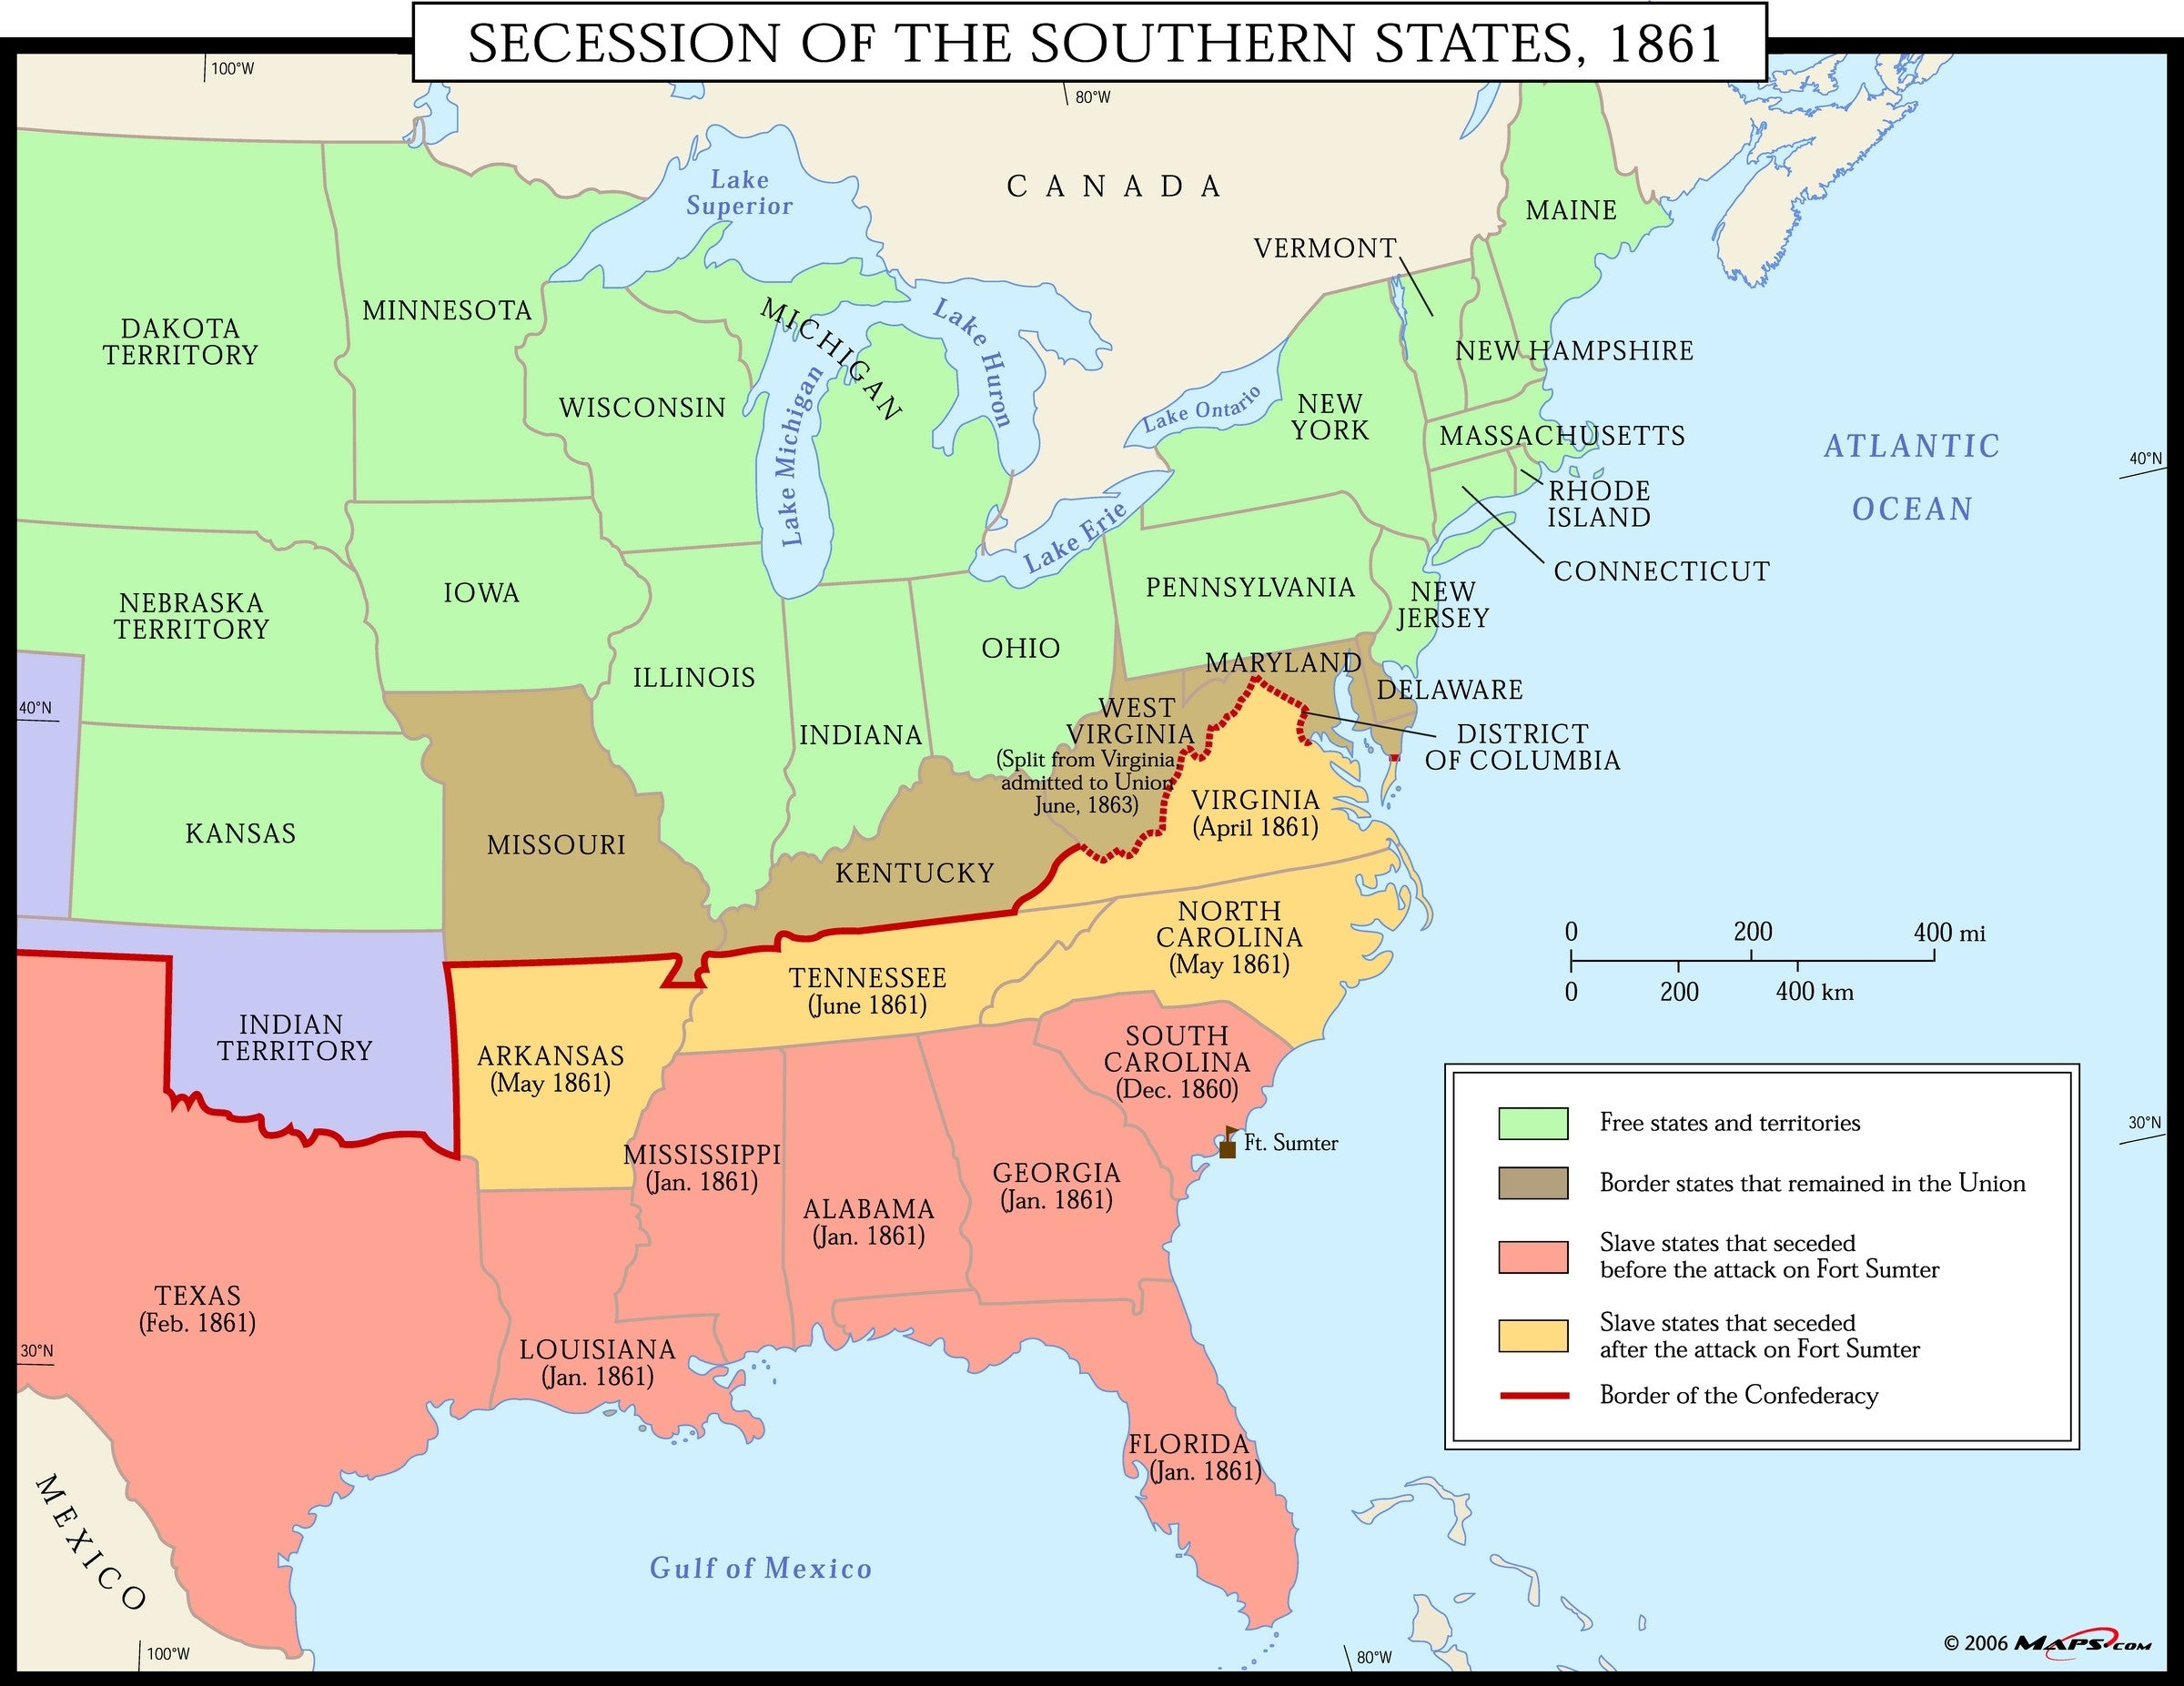 Us Secession Map 1861 Secession of the Southern States, 1861 Map | Maps.com.com